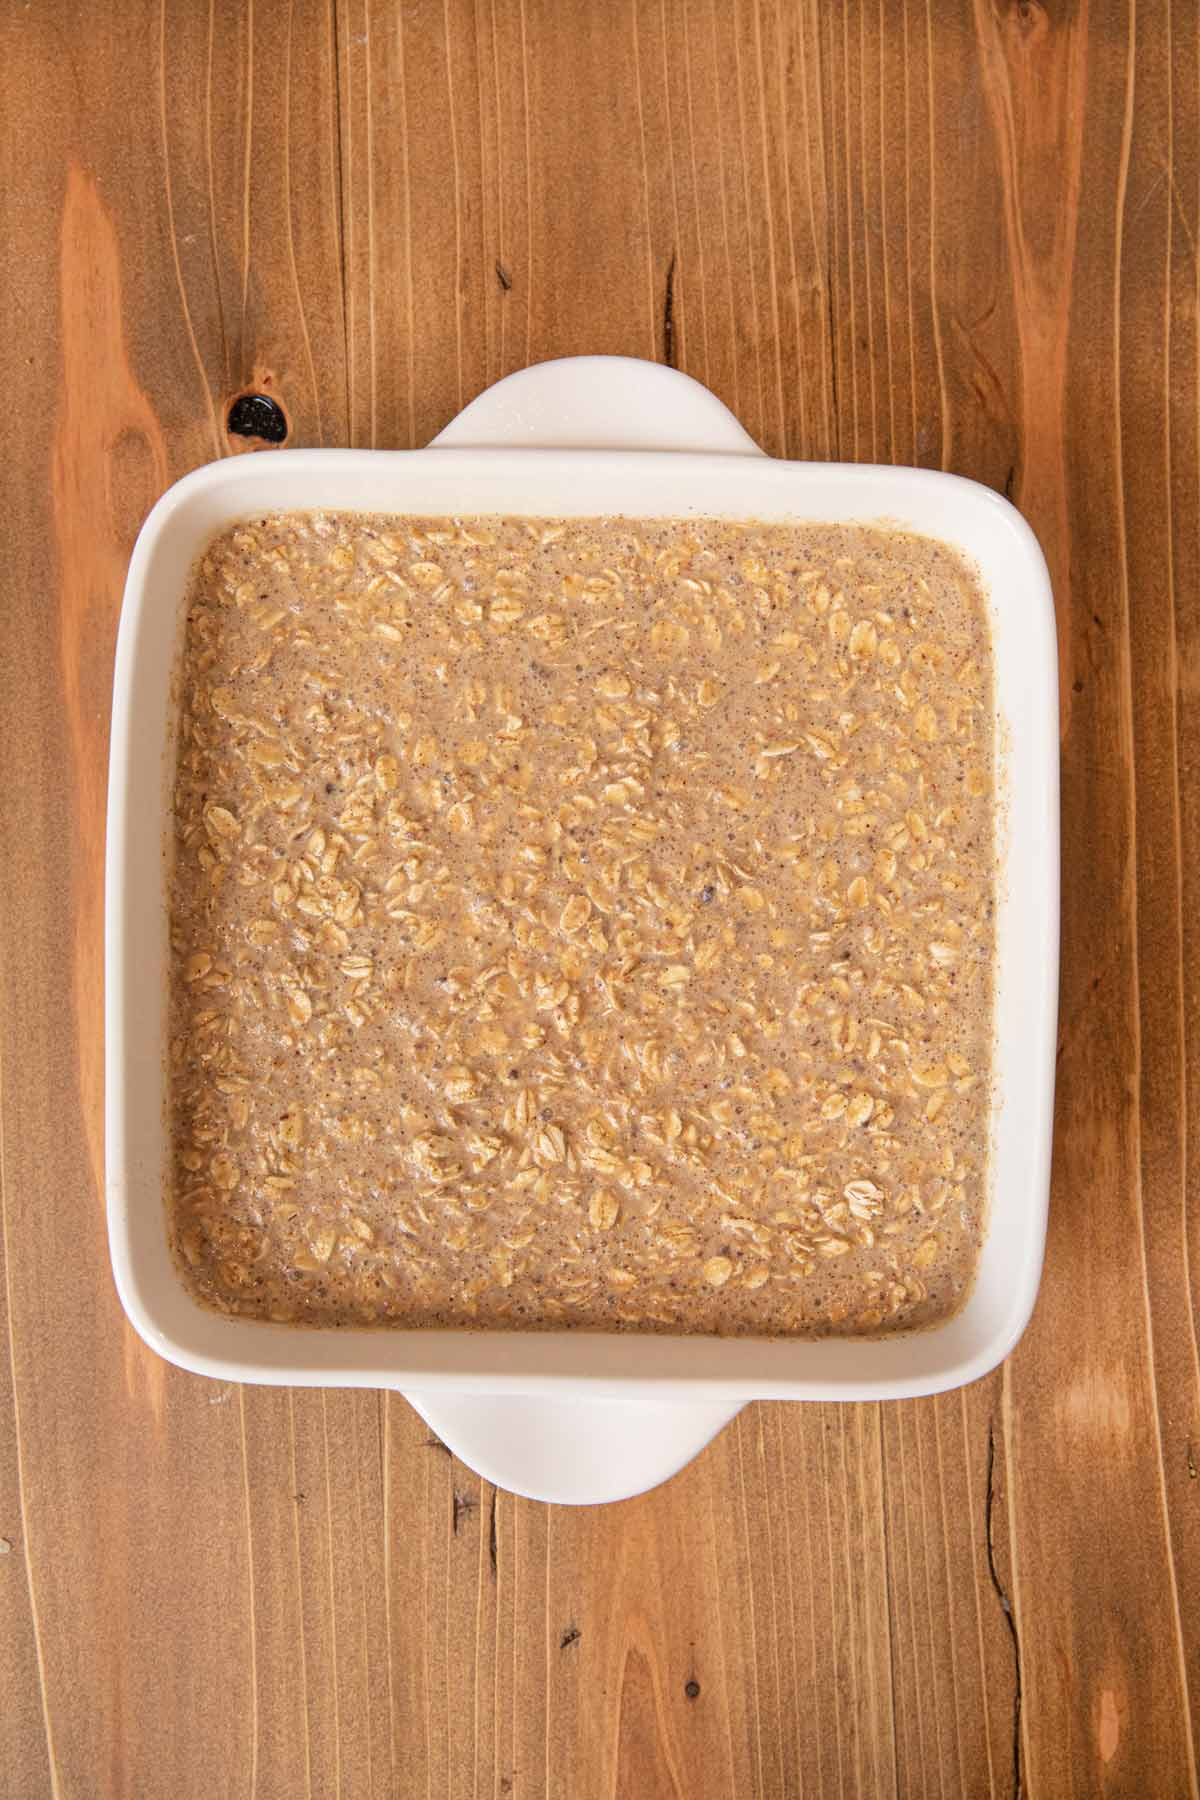 Baked Oatmeal in baking dish, uncooked